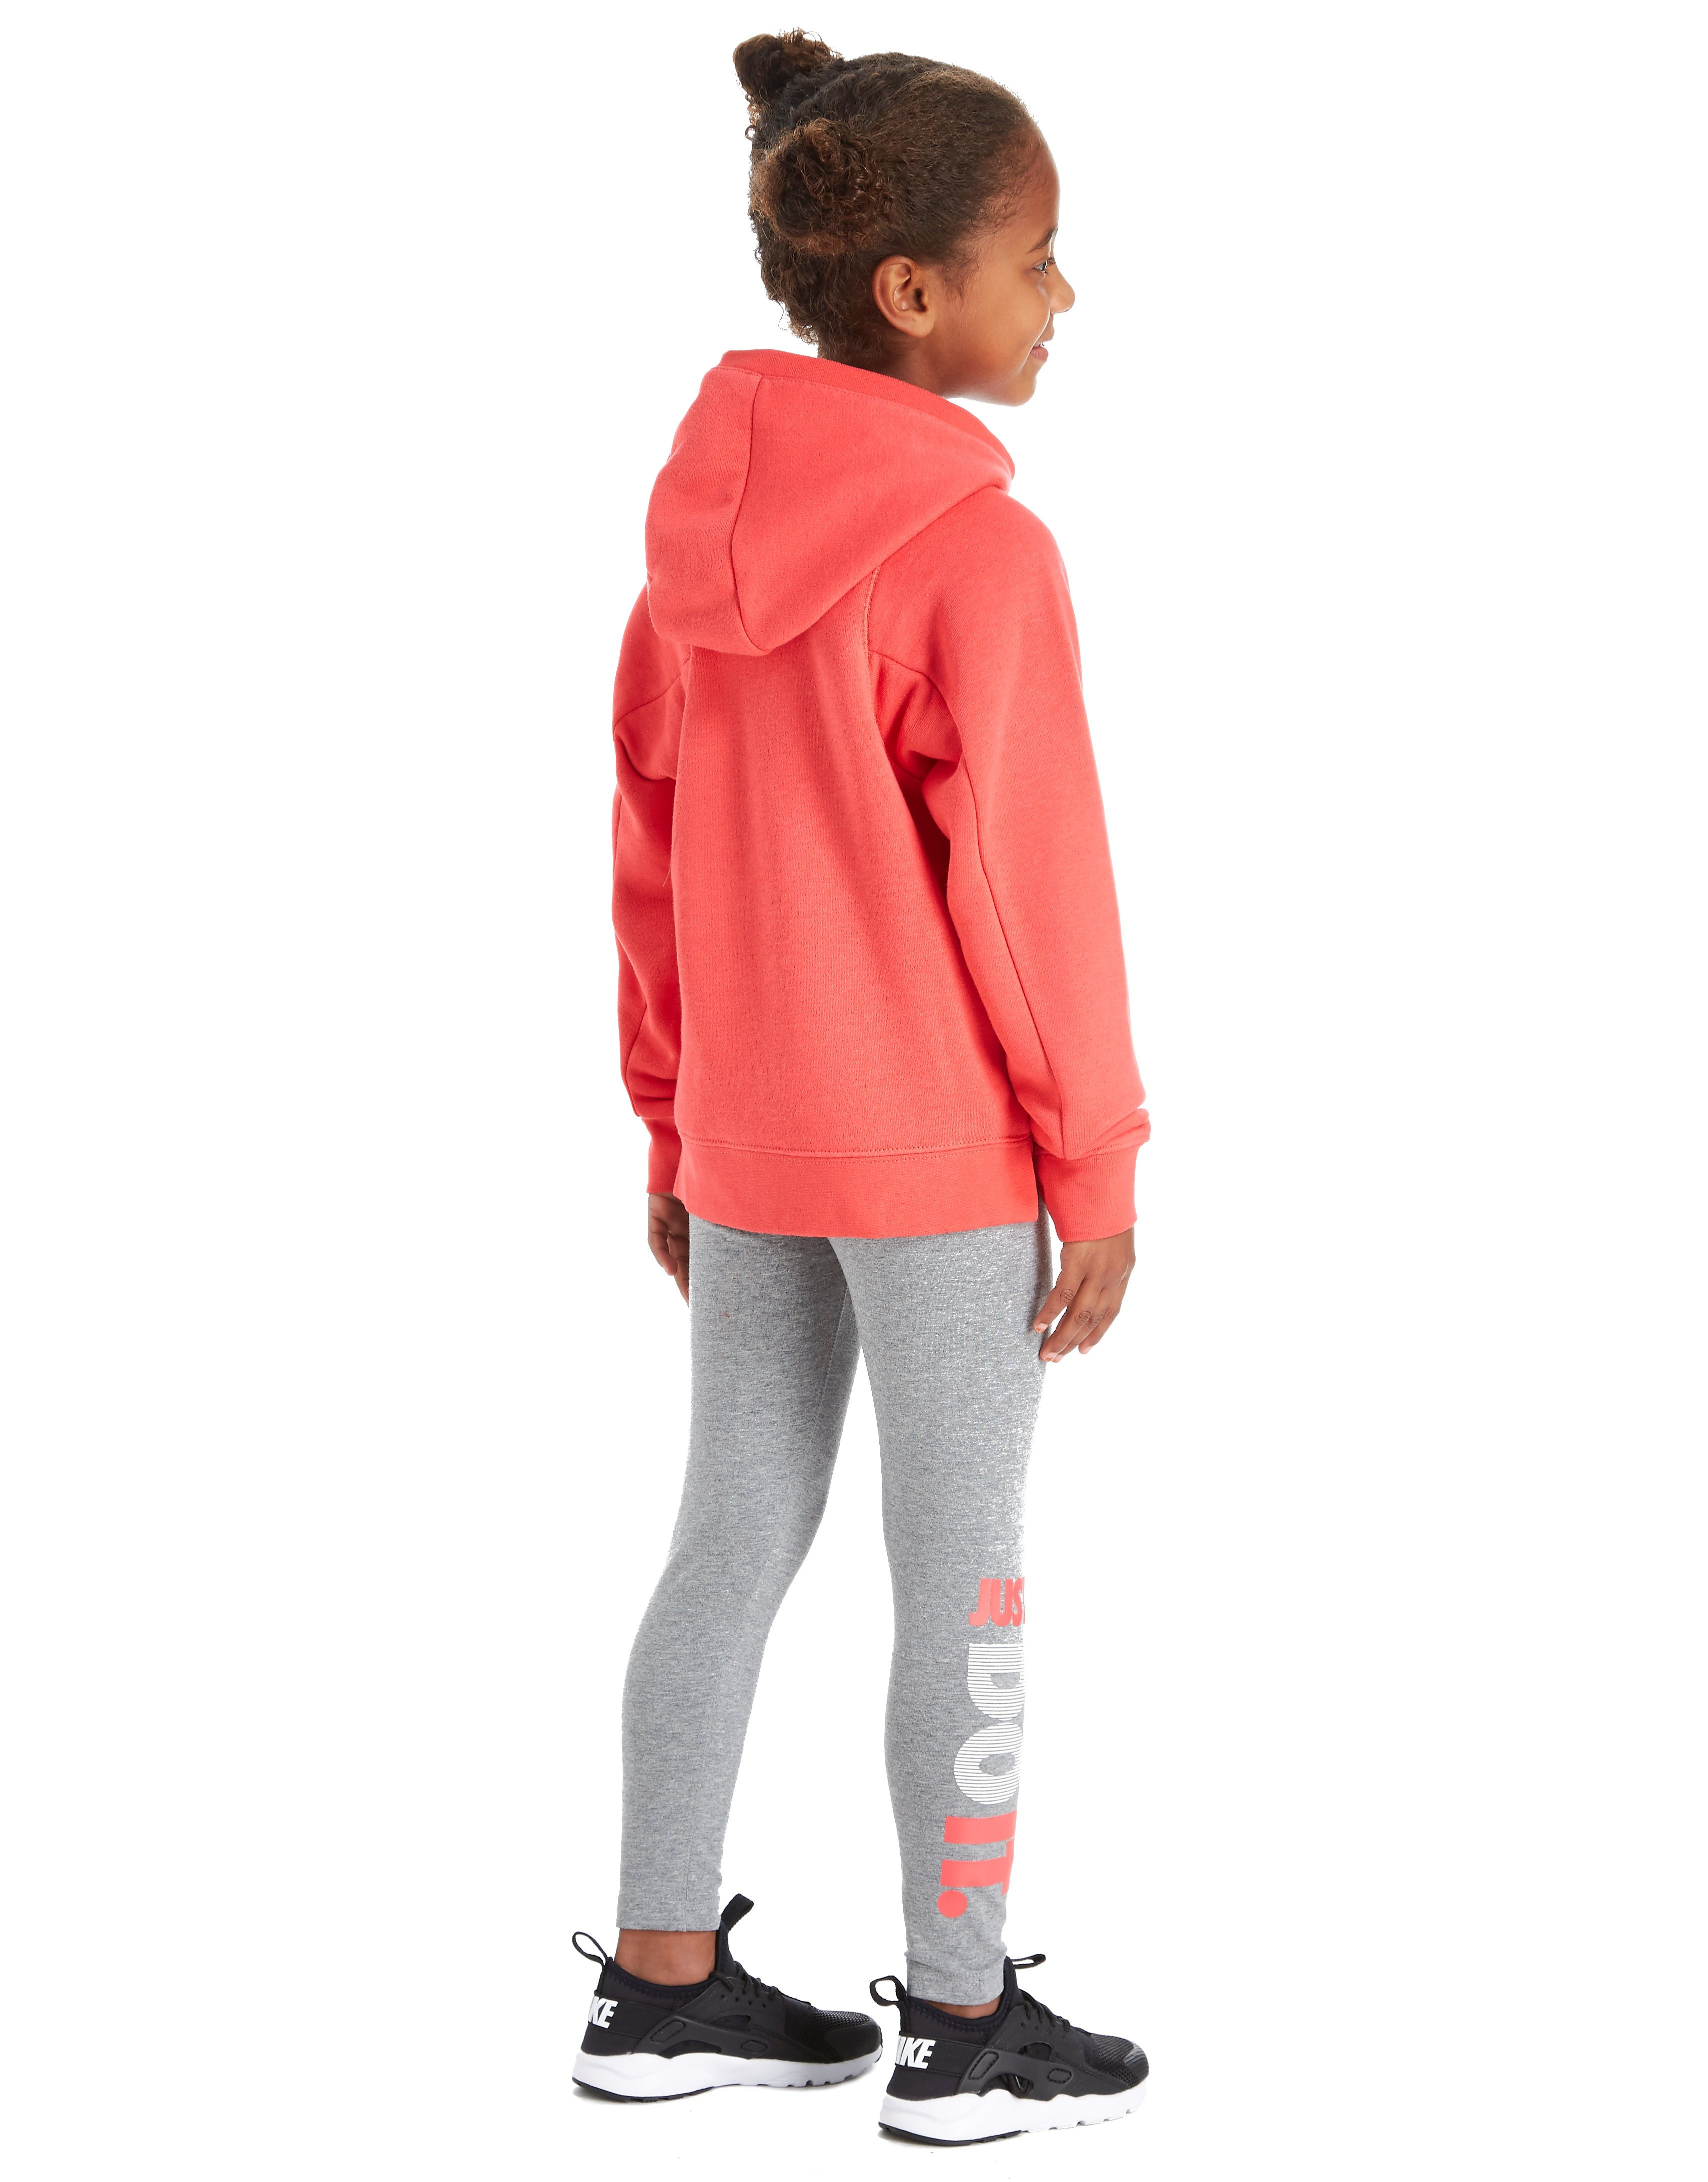 Nike Girls' Just Do It Hoodie and Legging Set Children